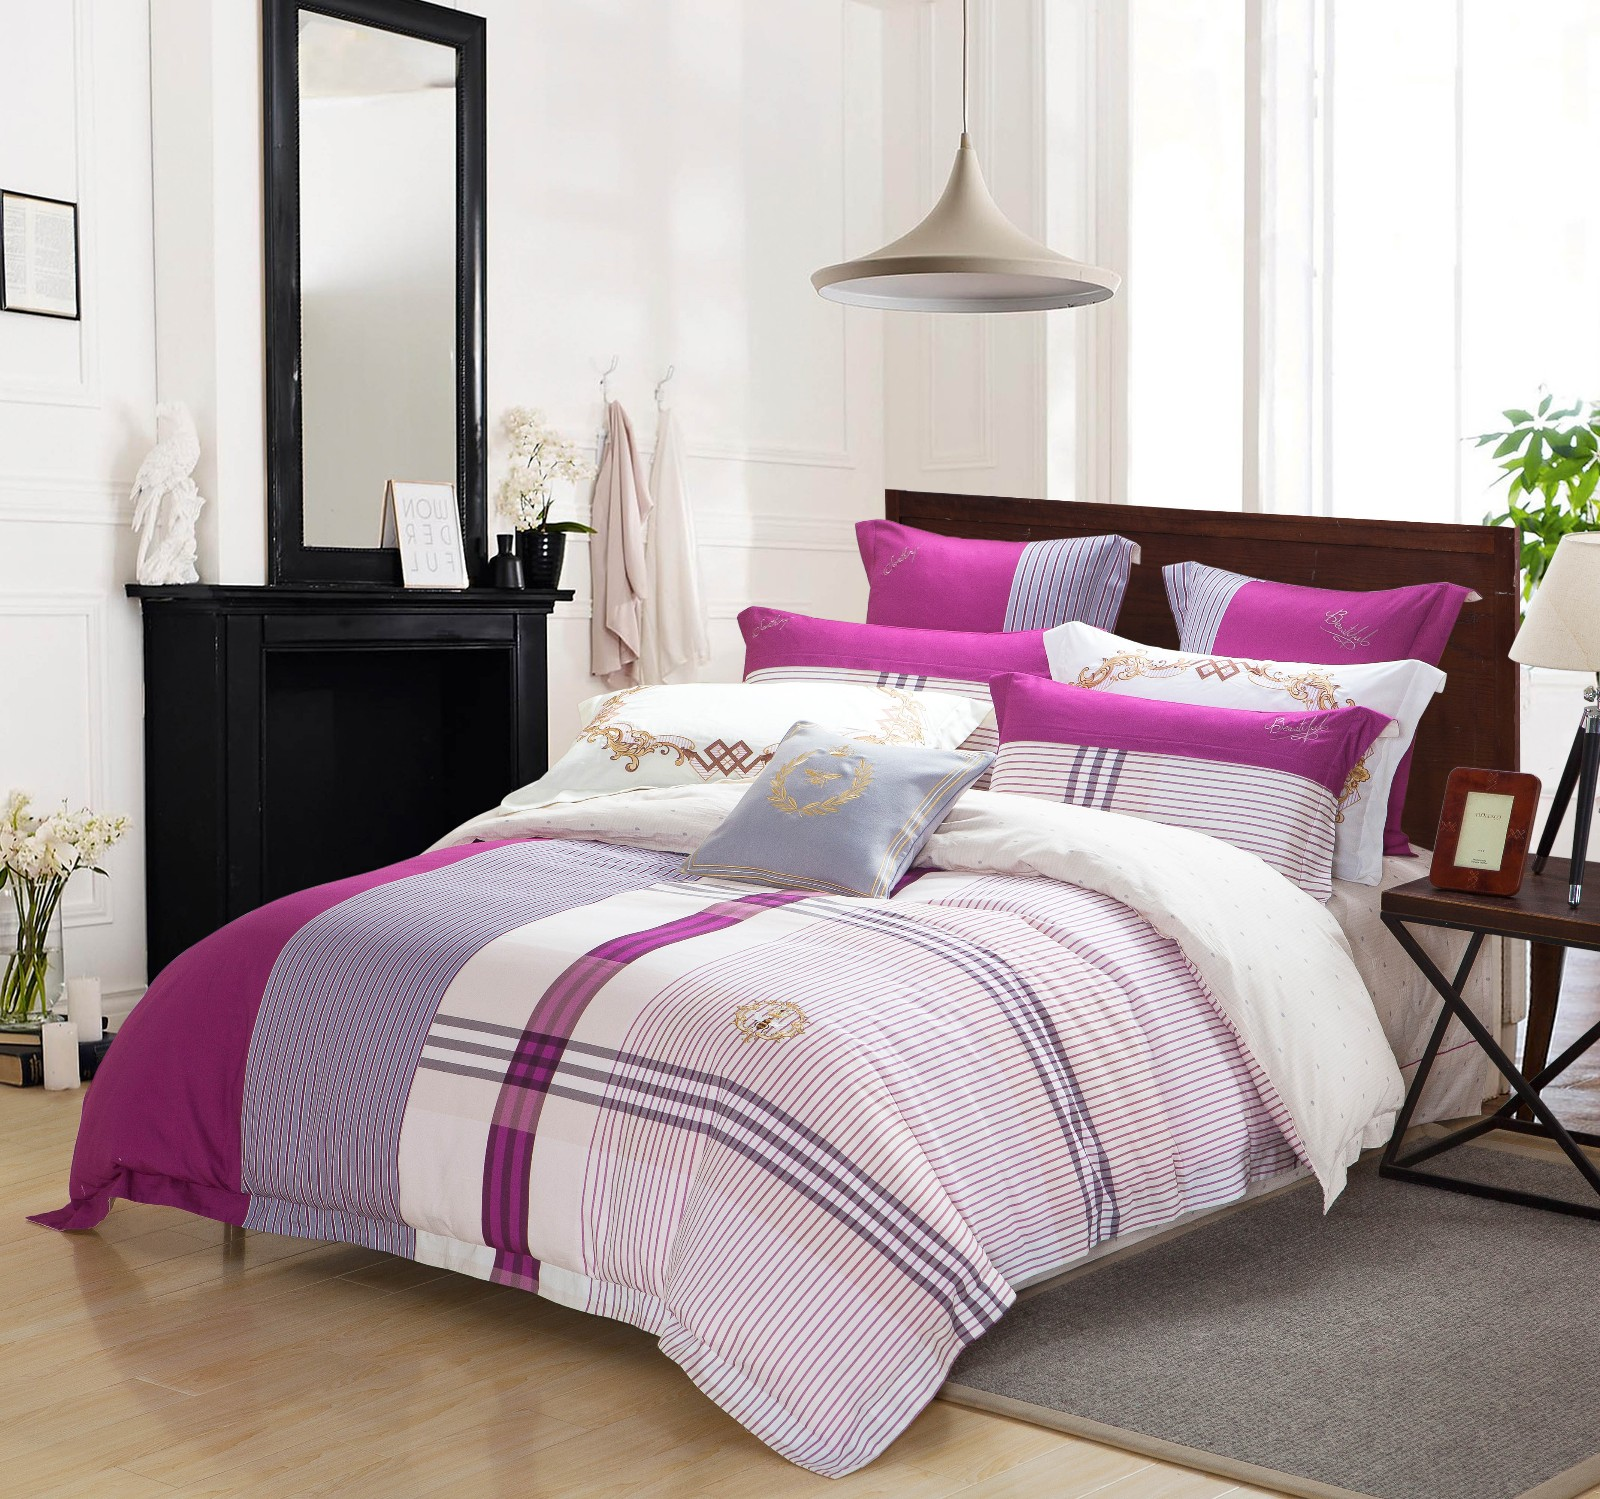 pattern adorable comfortable joint Daphne 100 cotton bedding sets